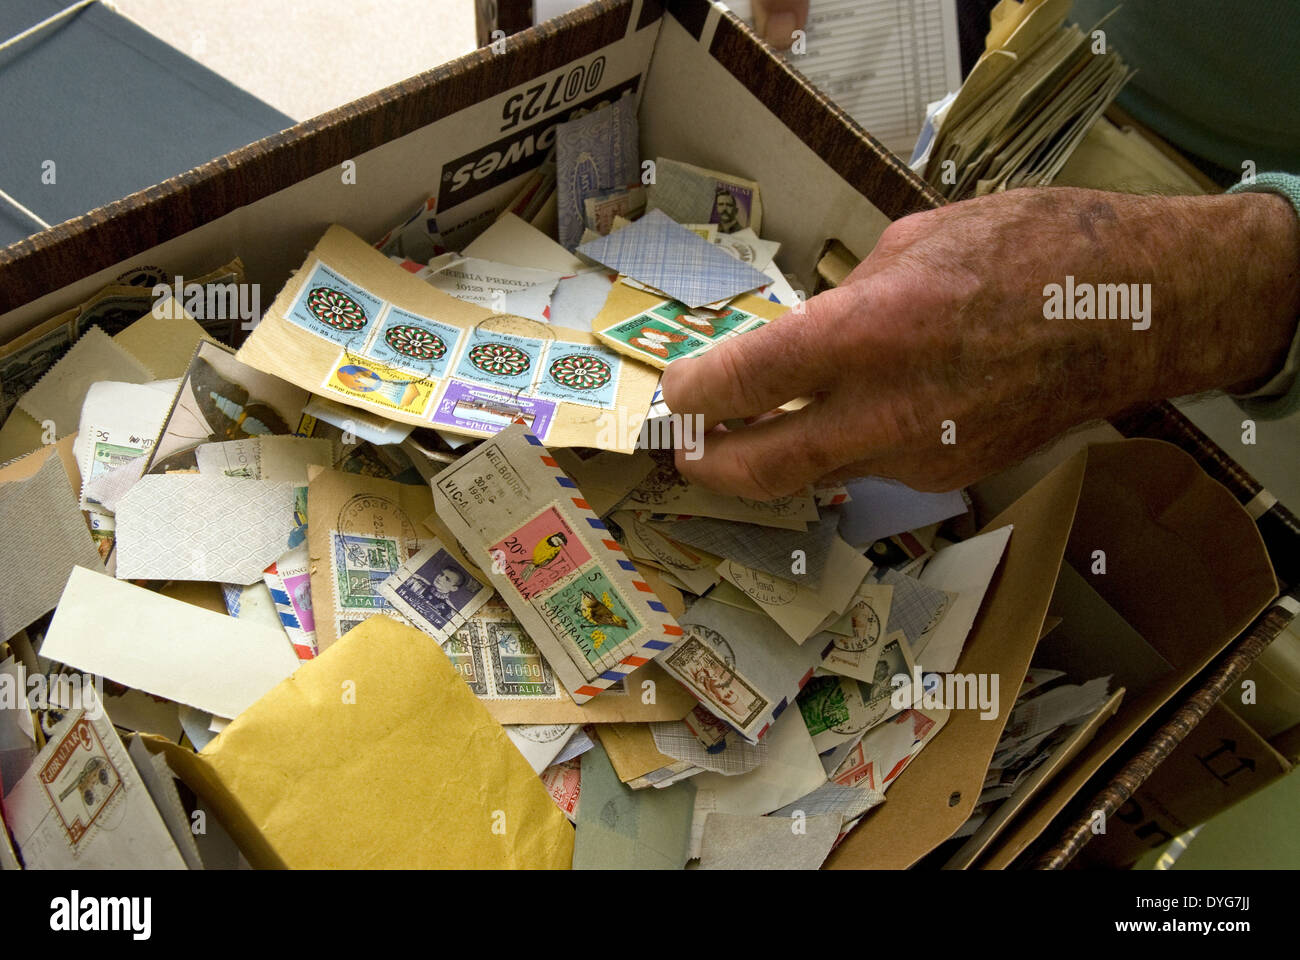 Attendee at a stamp auction leafing through a box of assorted stamps, Petersfield, Hampshire, UK. - Stock Image